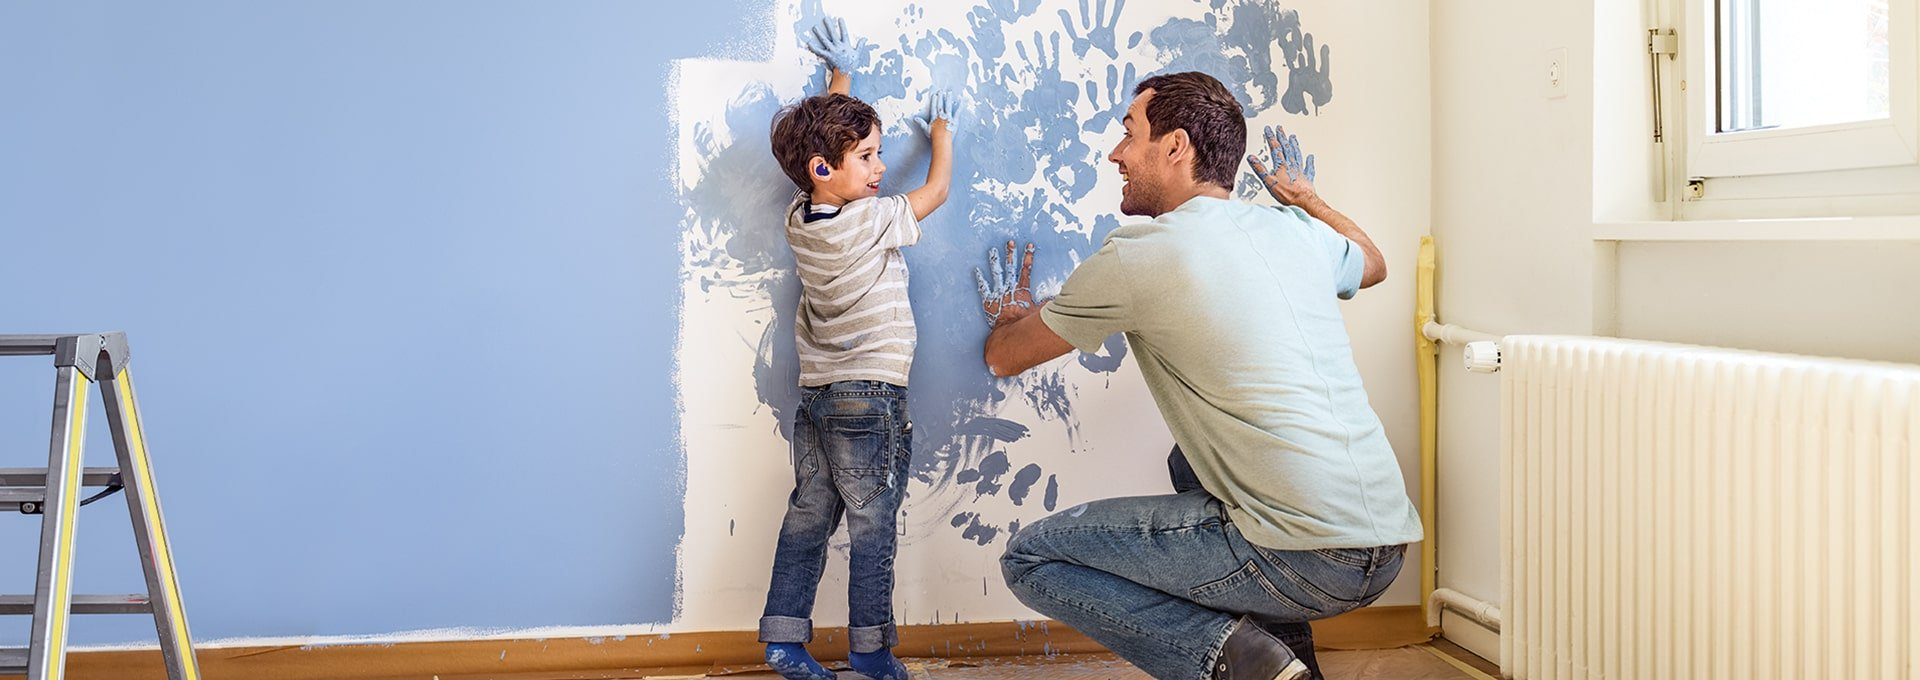 Father and son with Bernafon Leox Super Power|Ultra Power hearing aids painting a wall and spontaneously adding hand prints.